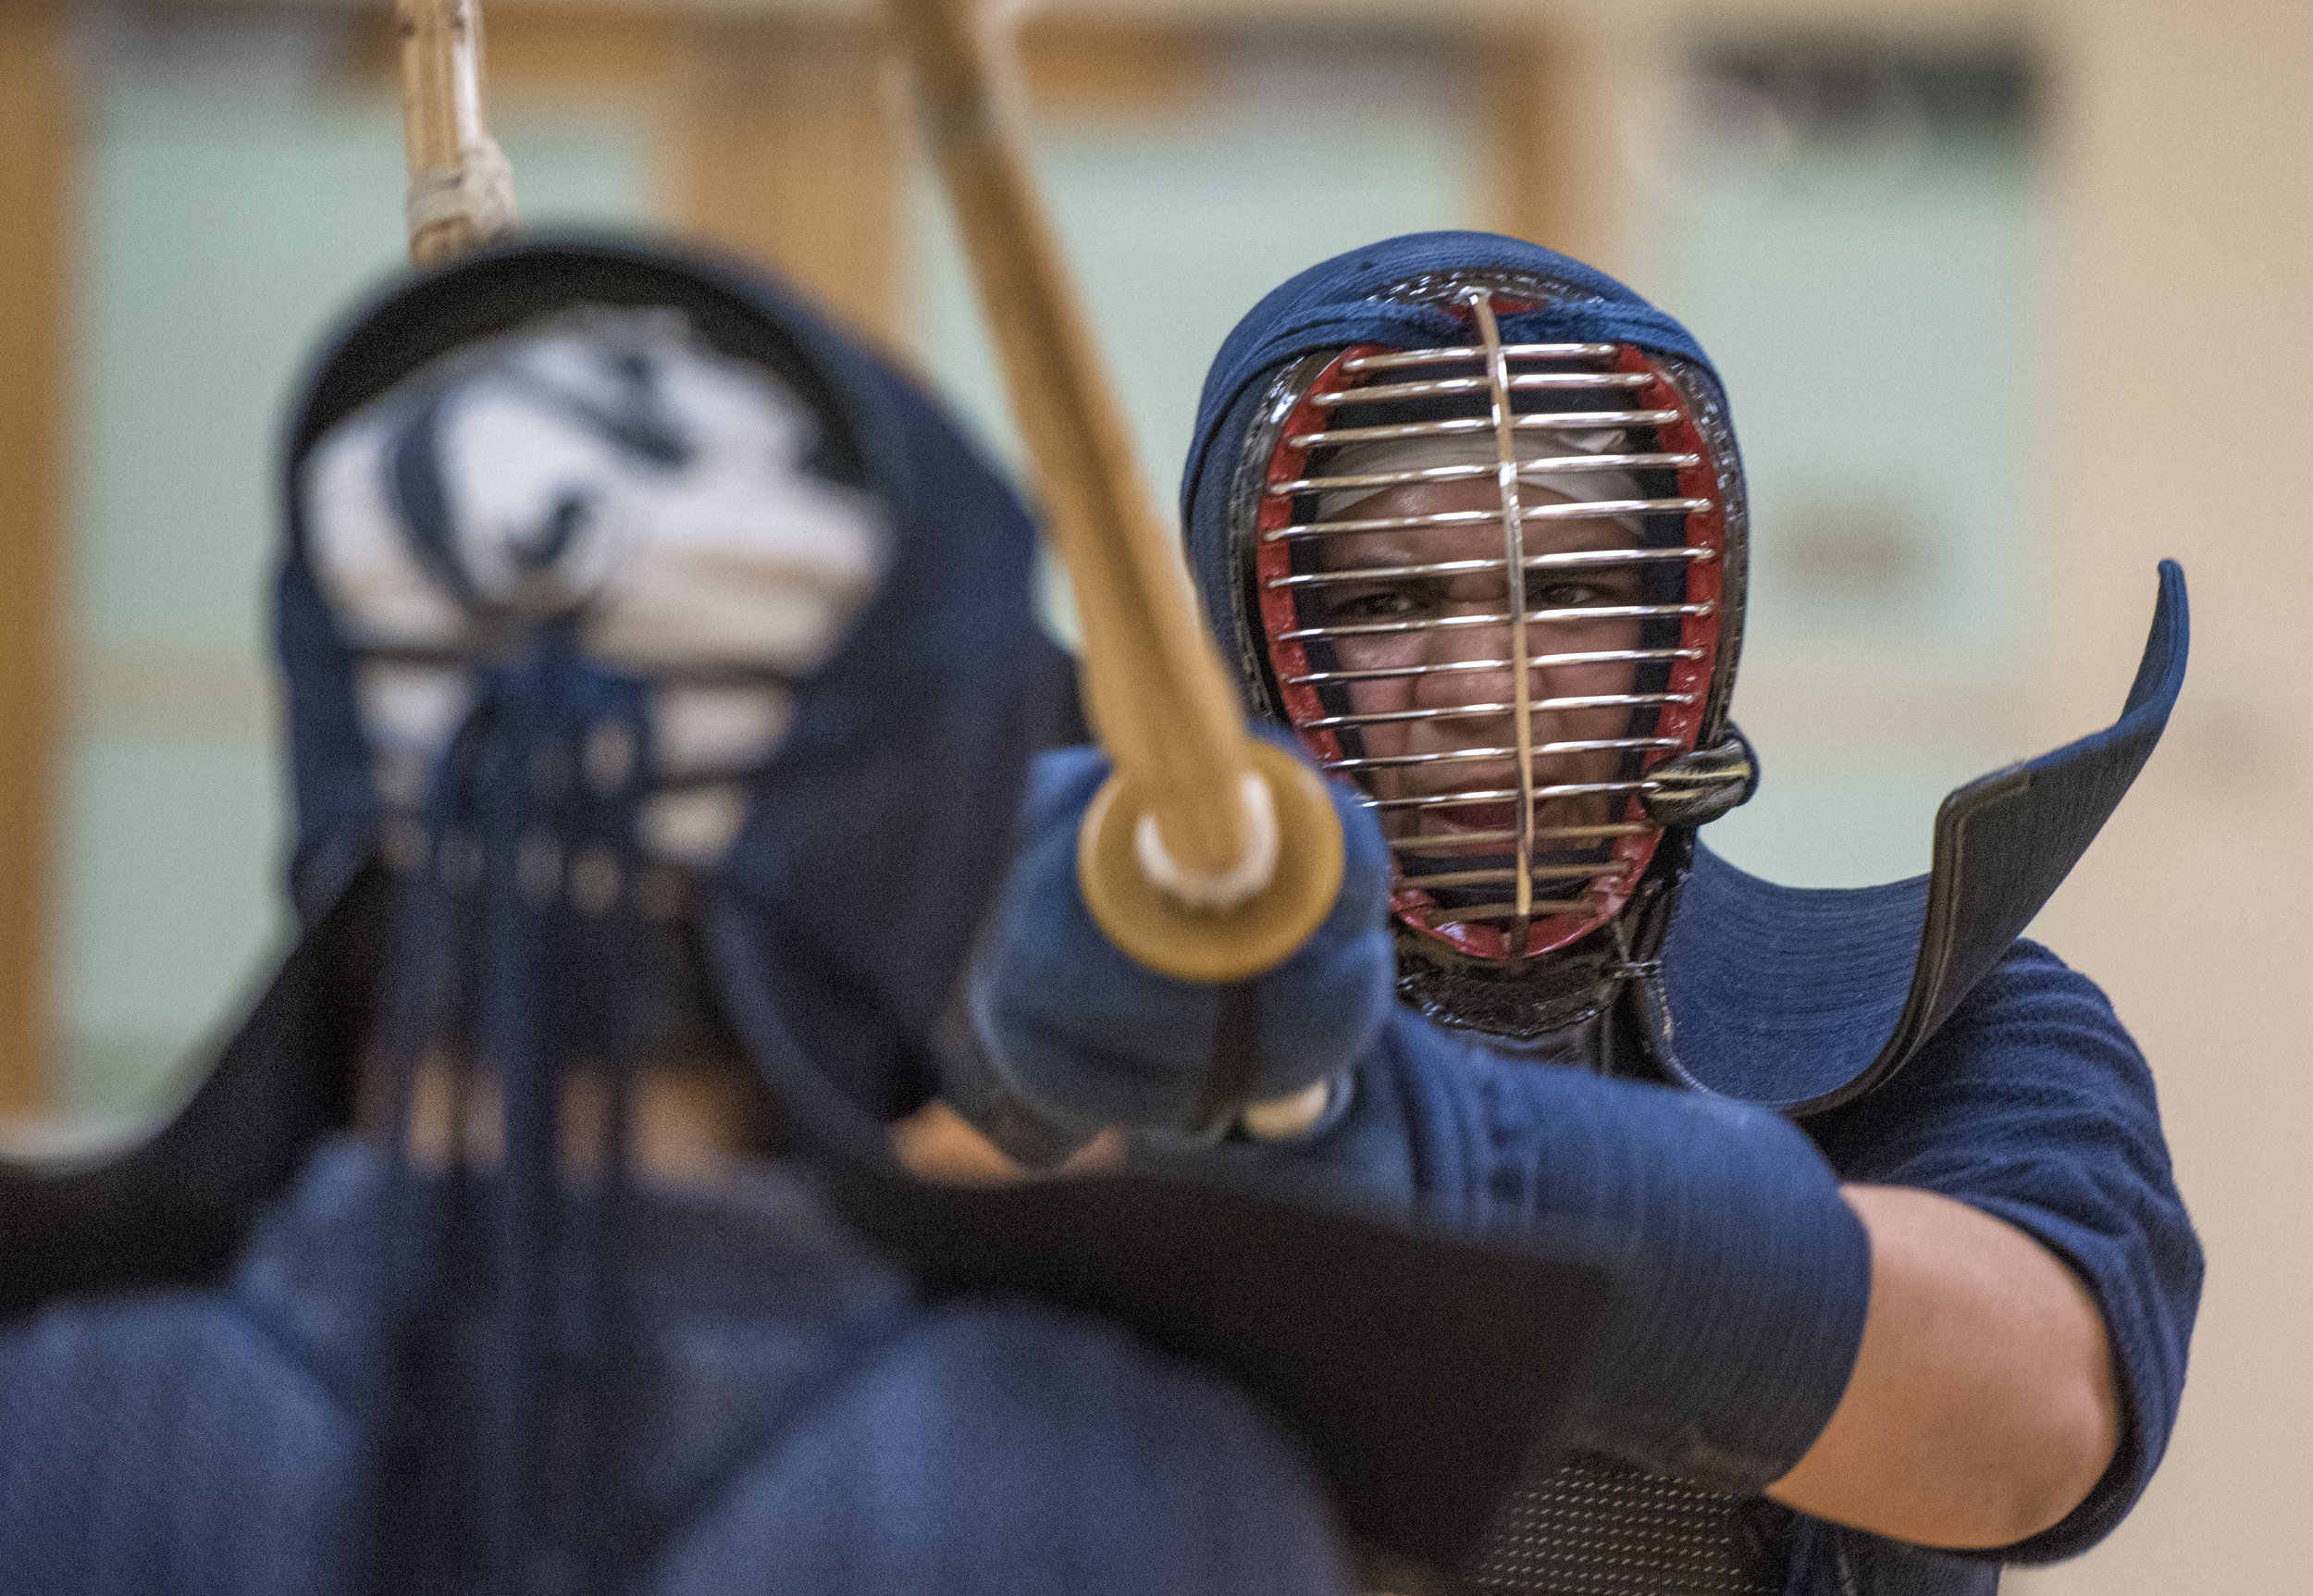 Alex Airado, a senior studying criminology, practices kendo moves against another member of the Ohio University kendo club.